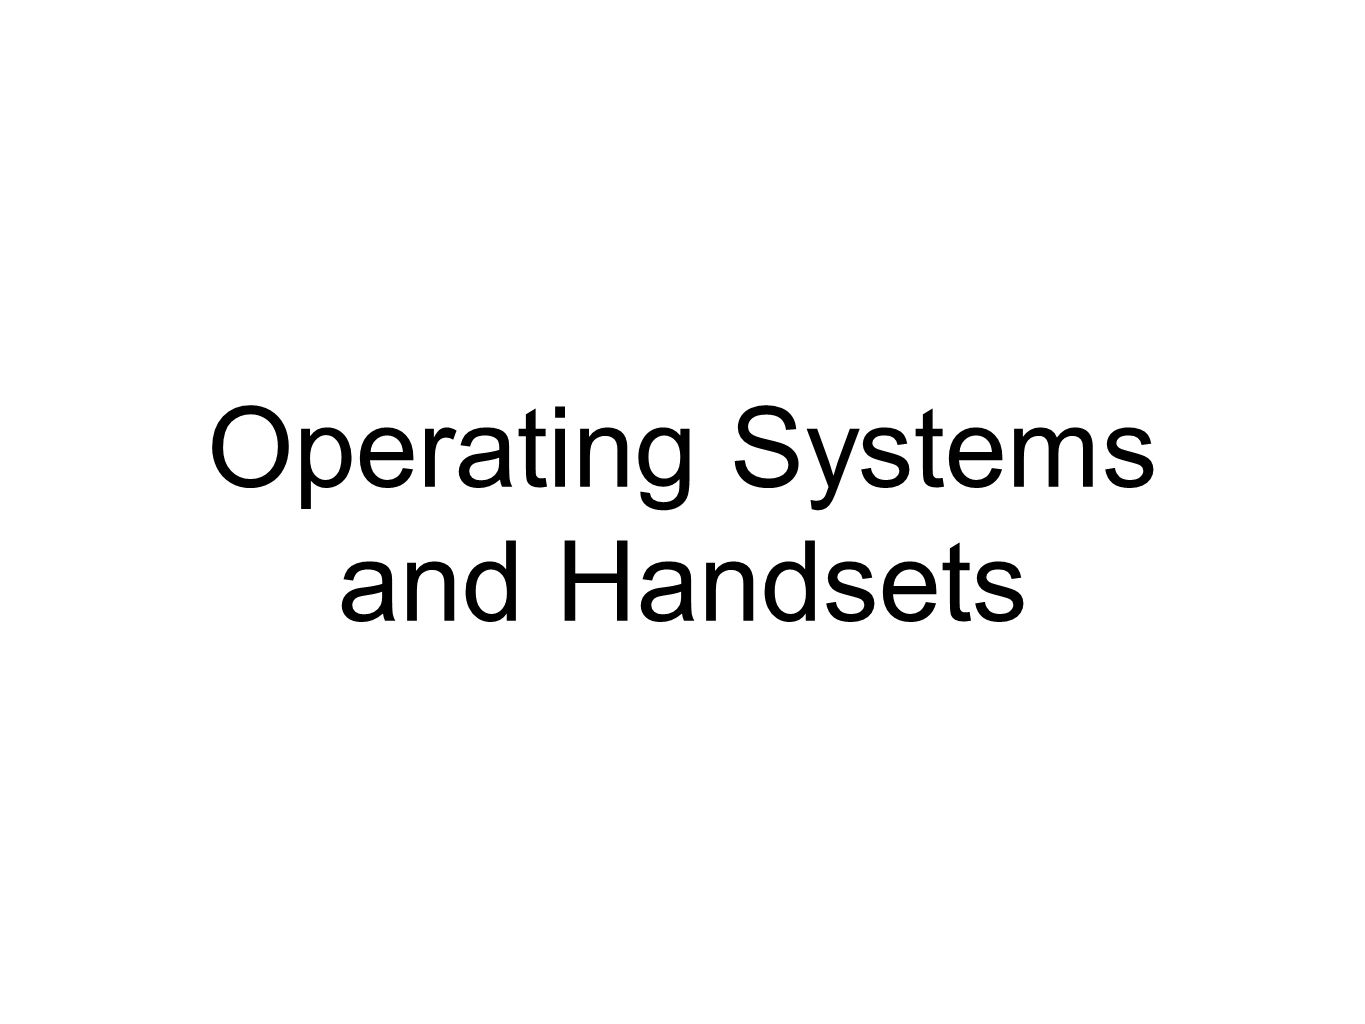 Operating Systems and Handsets